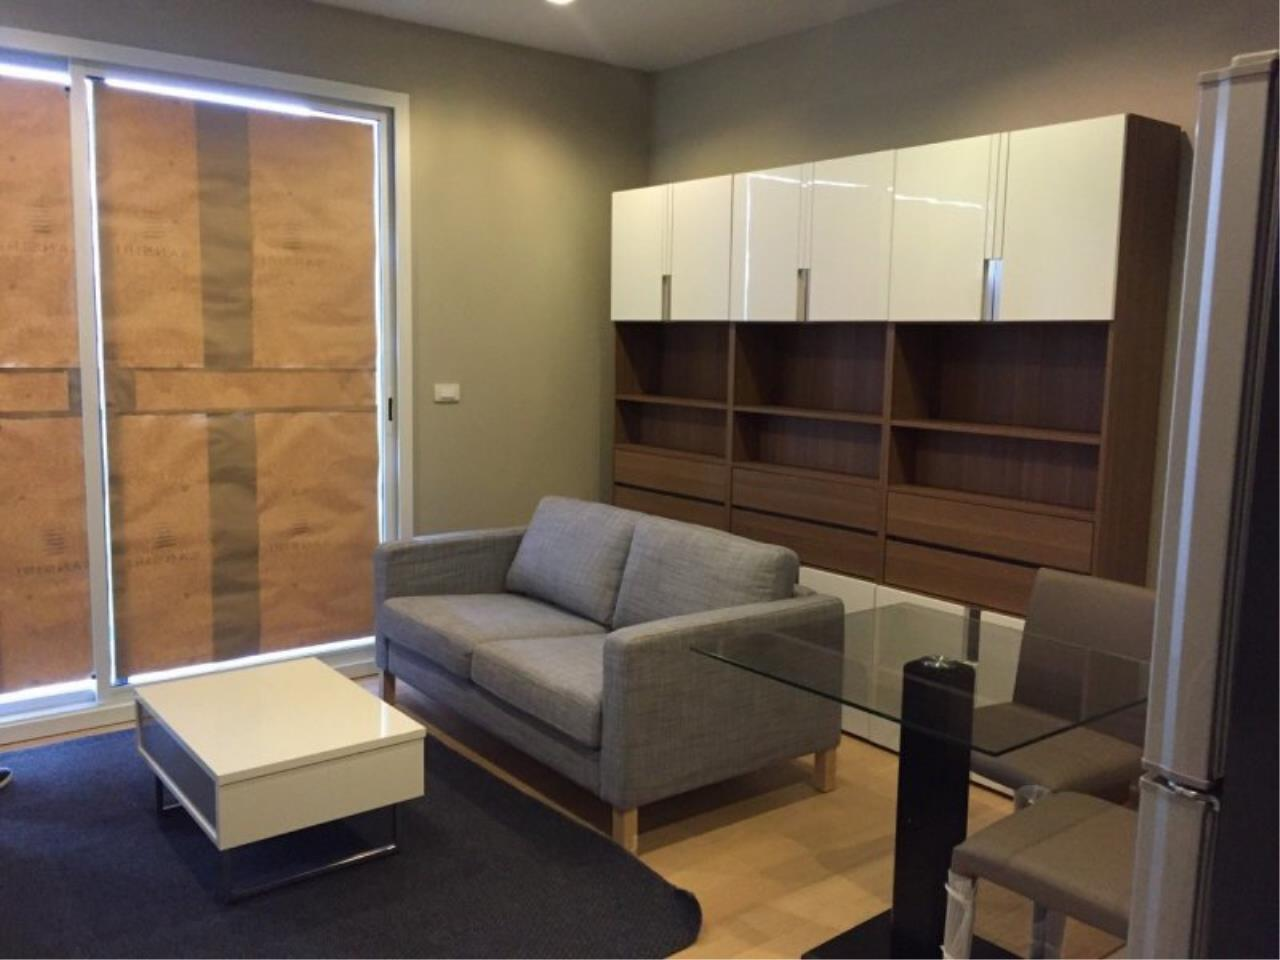 Piri Property Agency's Compact 1 Bedroom in the HQ Condo for rent on high floor 1